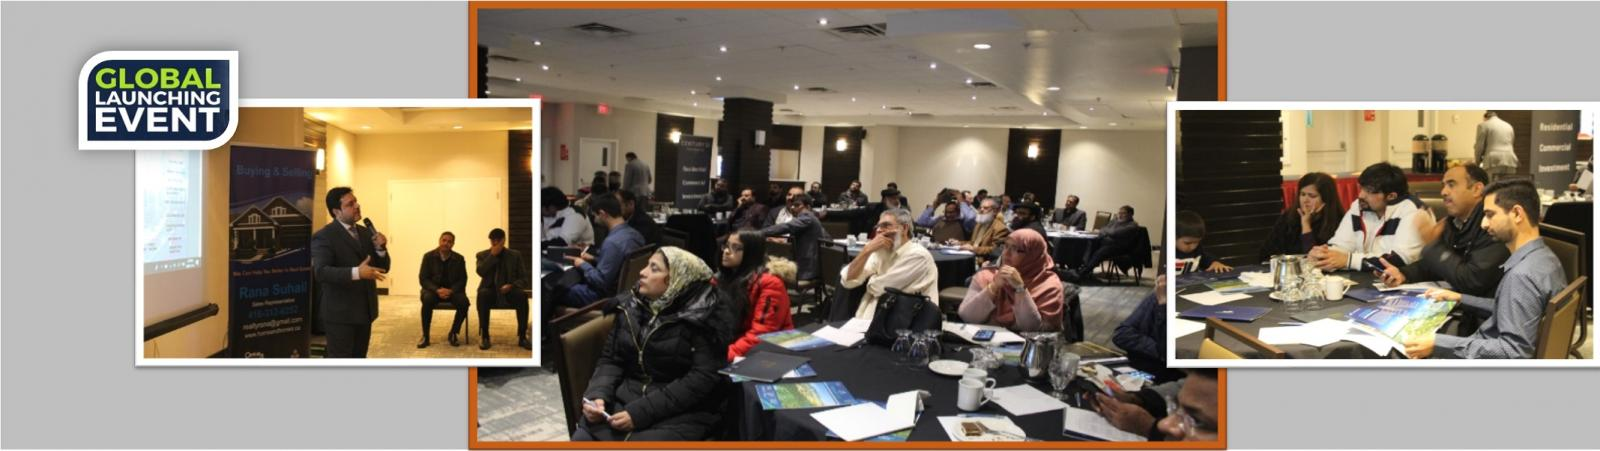 Global Launching Event - Canada